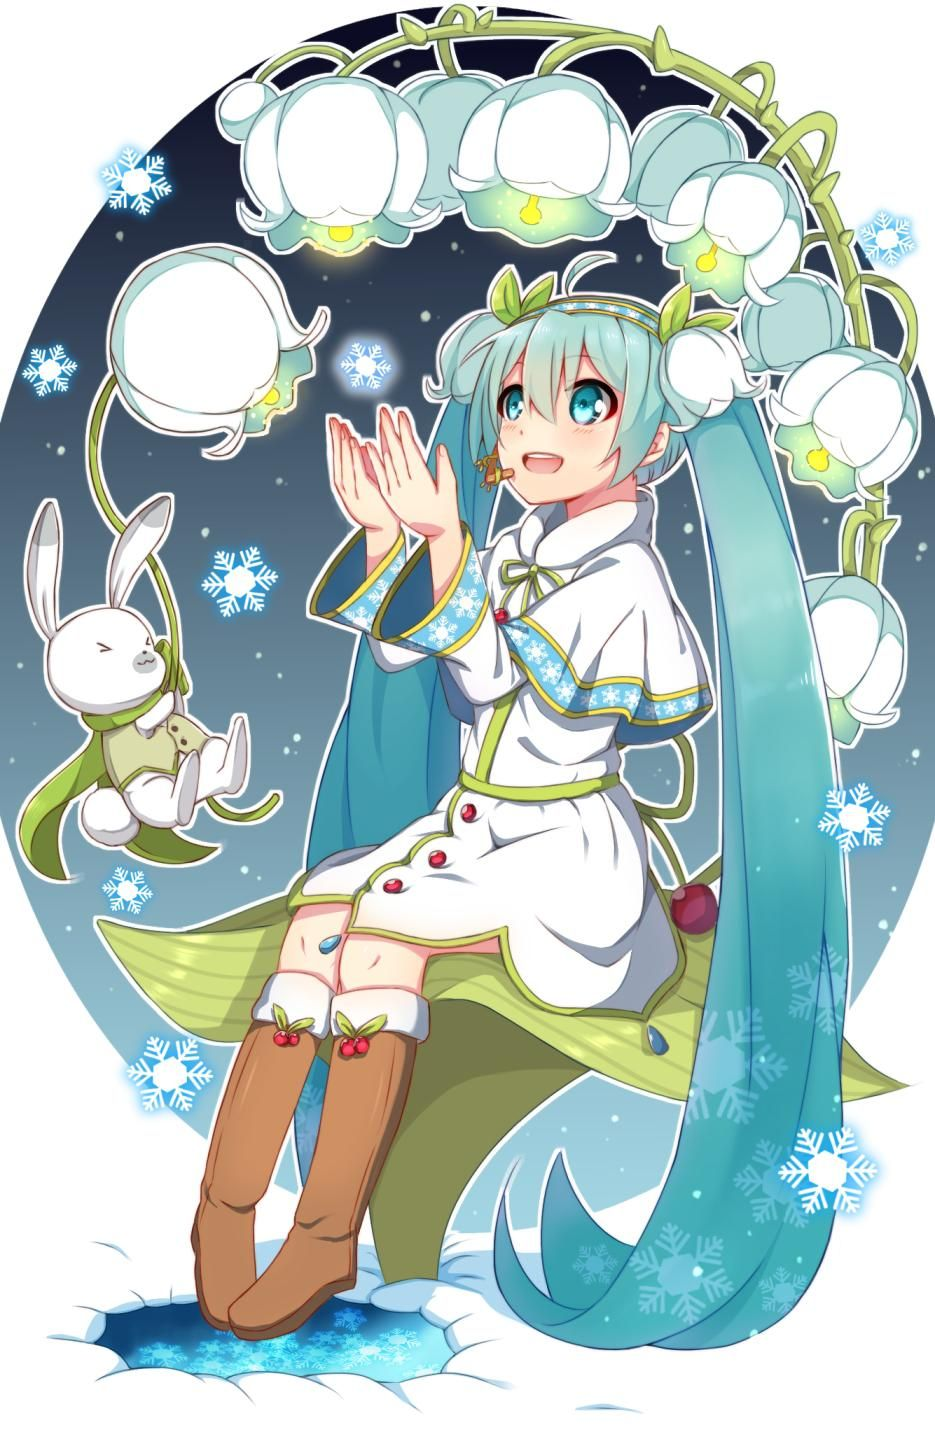 Pin by Kelsey Thompson on Vocaloids Hatsune miku, Anime